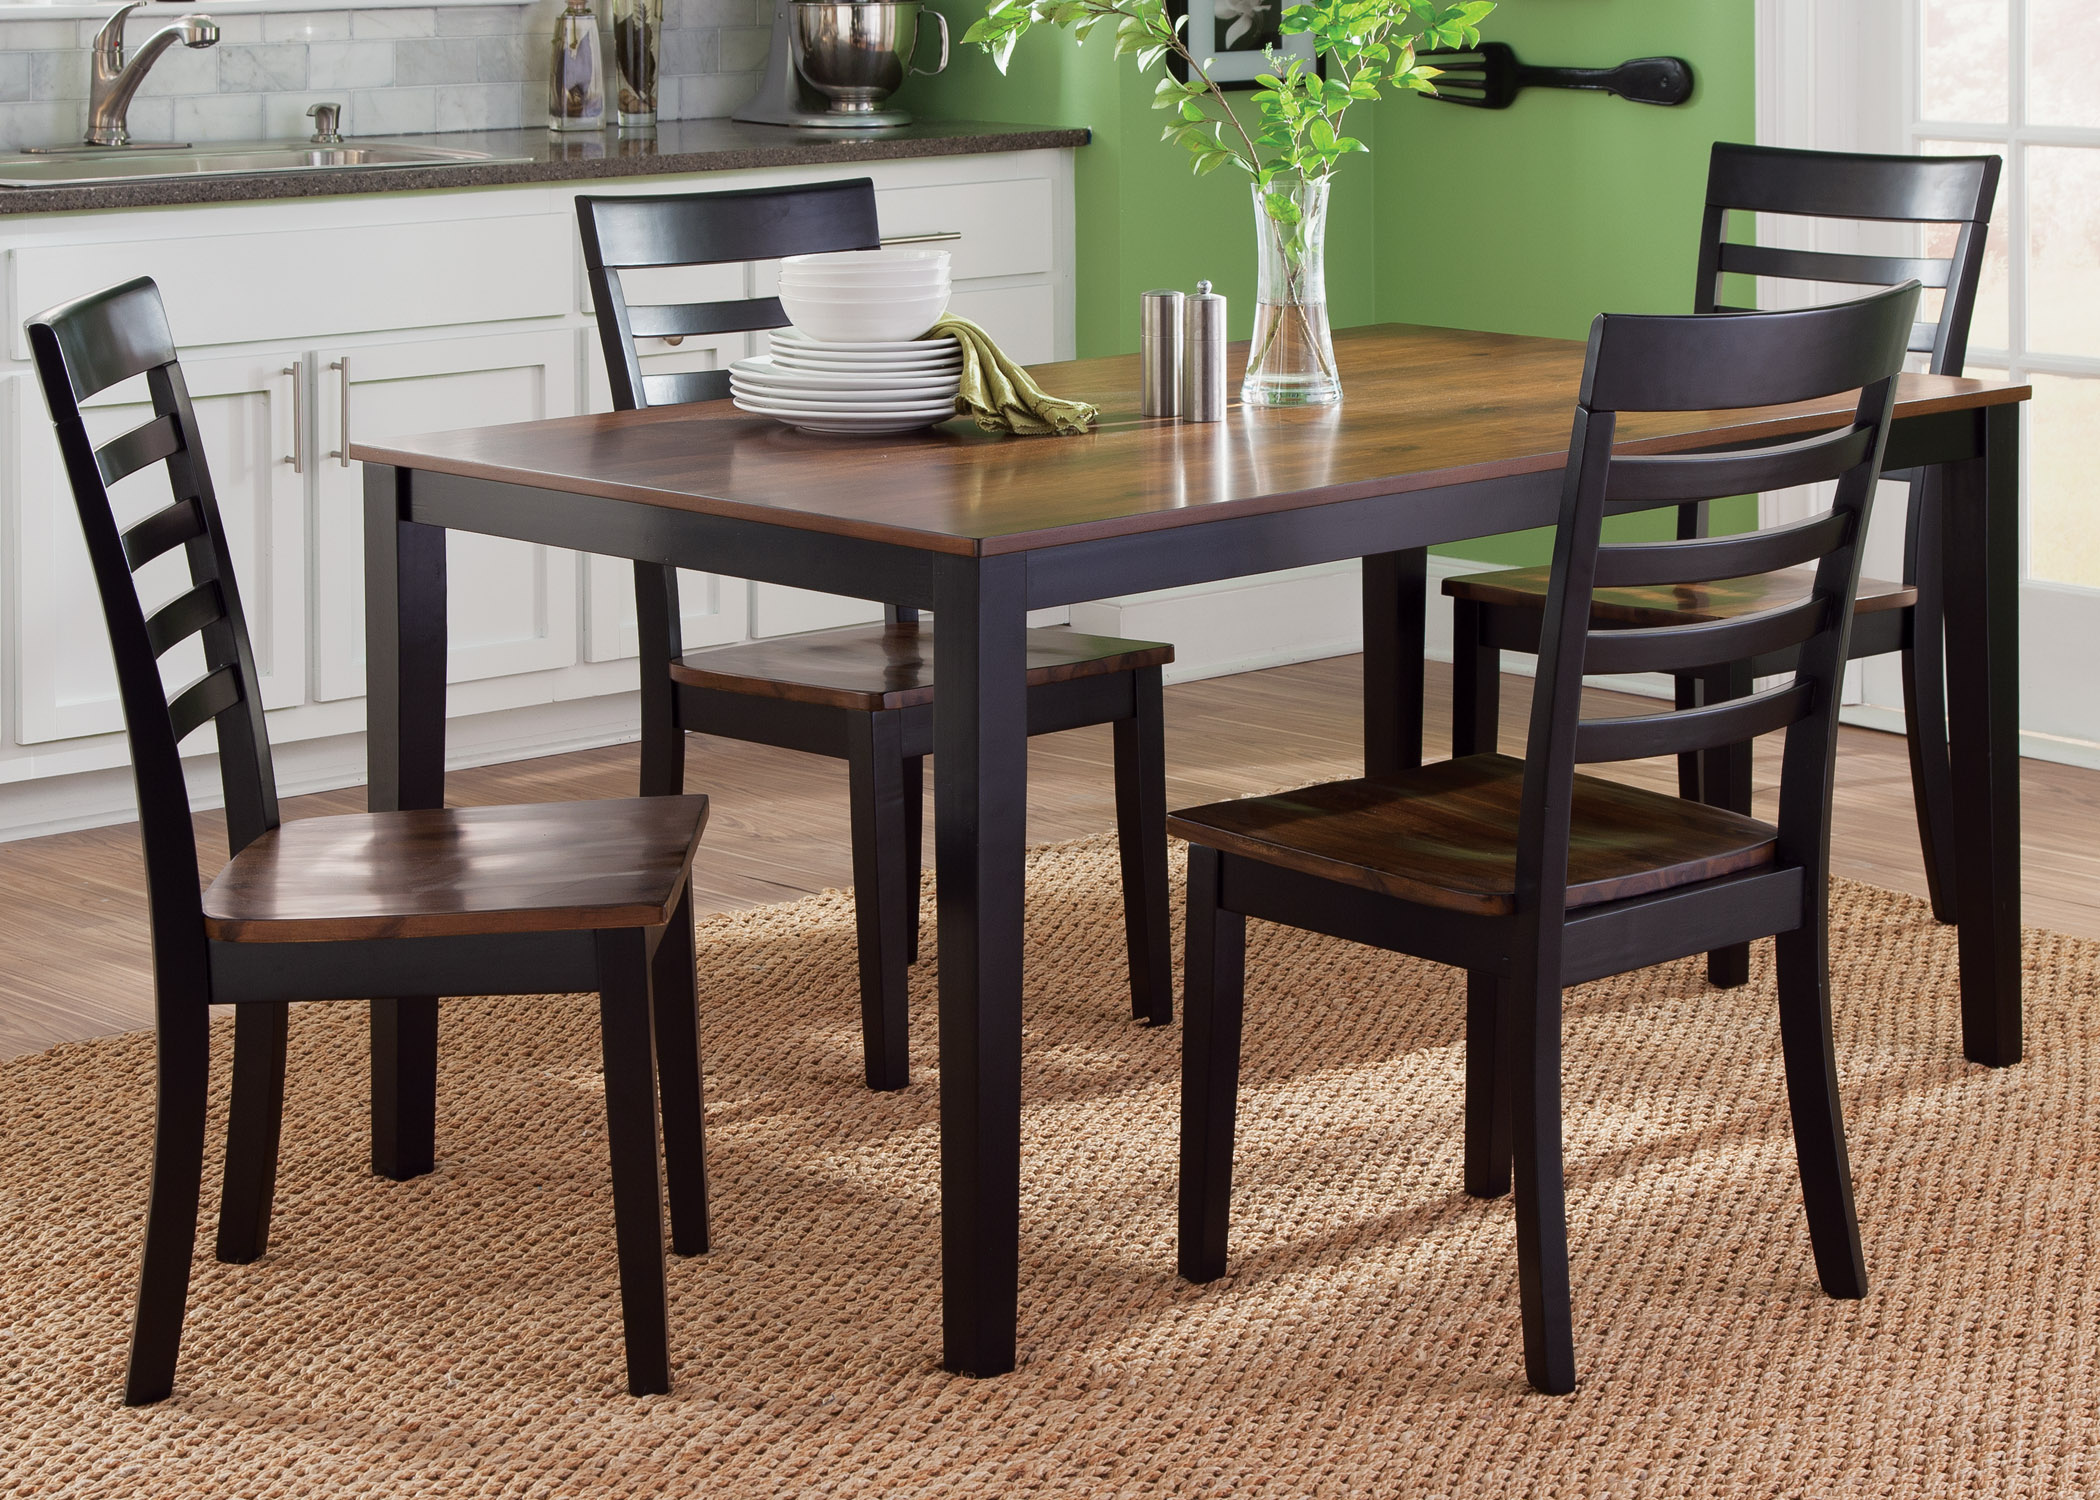 Liberty Furniture Cafe Dining 5 Piece Rectangular Table Set - Item Number: 56-CD-5RLS